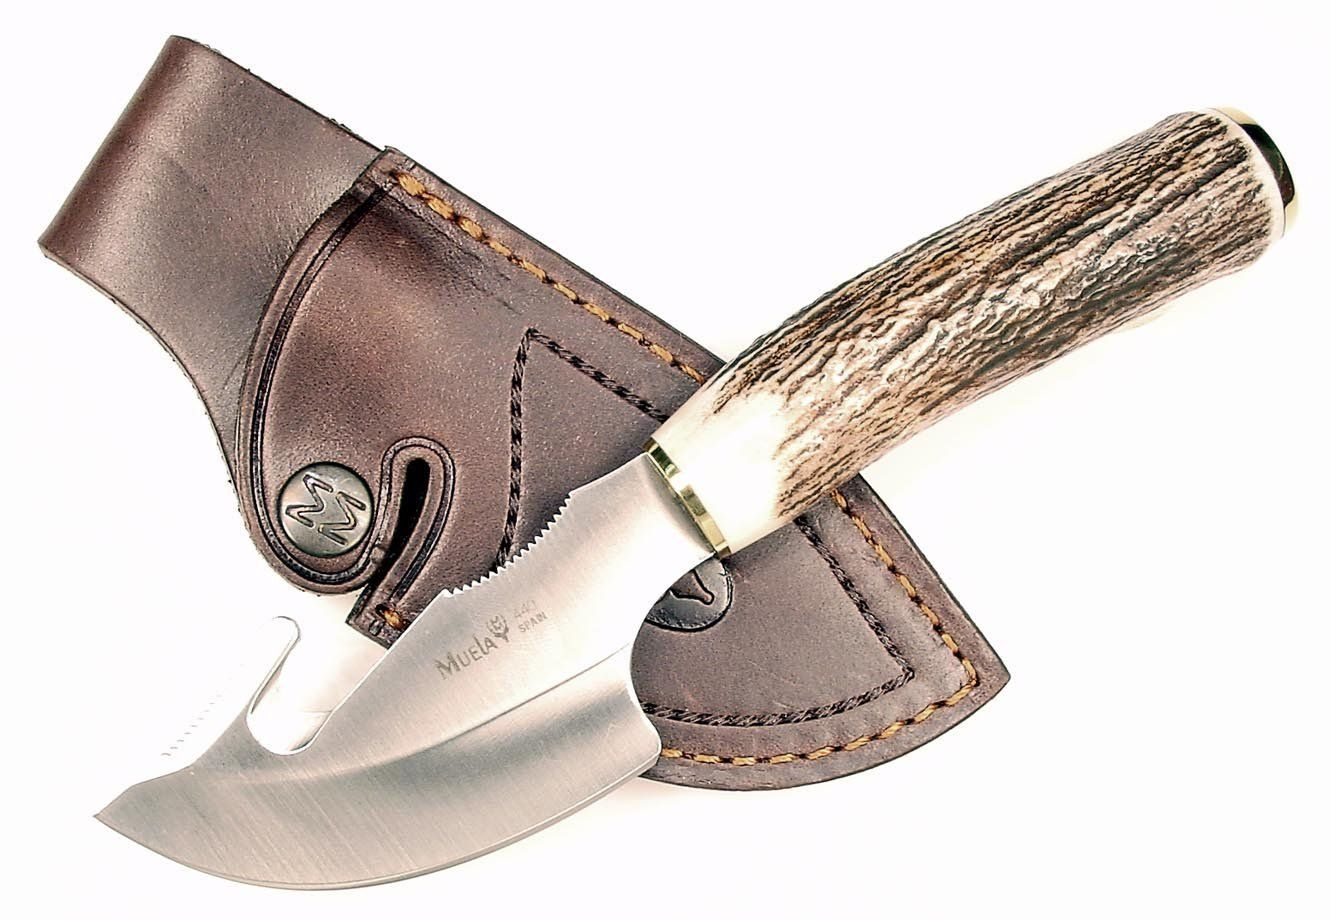 Ruko 3 1 8 Inch Blade Gut Hook Skinning Knife With Genuine Deer Horn Handle And Leather Sheath Learn More By Visiting T Skinning Knife Leather Sheath Knife